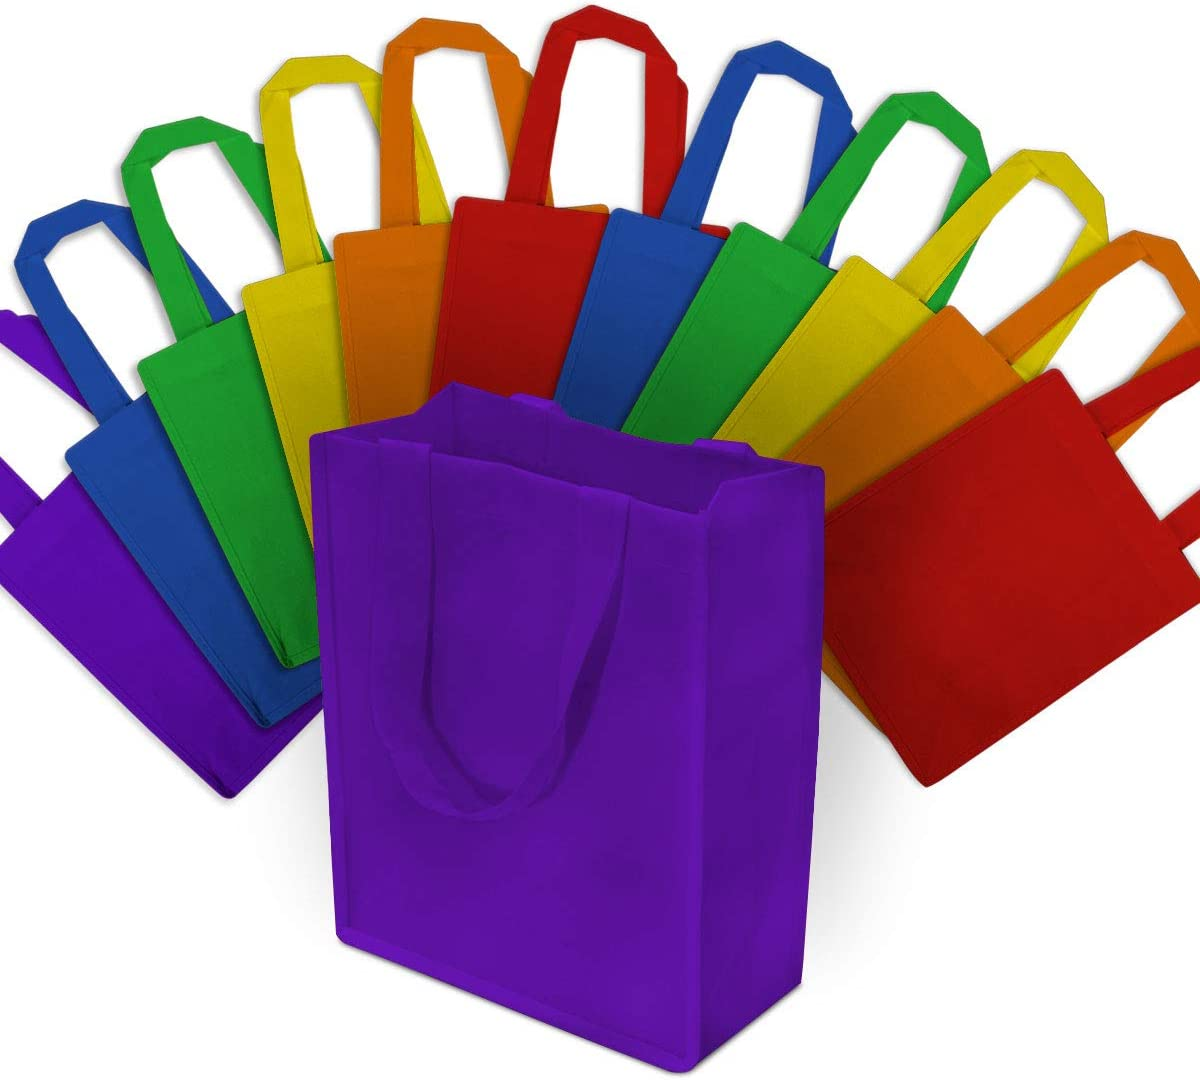 "8x4x10"" 12 Pcs. Medium-Small Multi Color Reusable Tote Bags, Grocery Bags, Fabric Shopping Bags with Handles Eco Friendly- 100% Recyclable Bag"